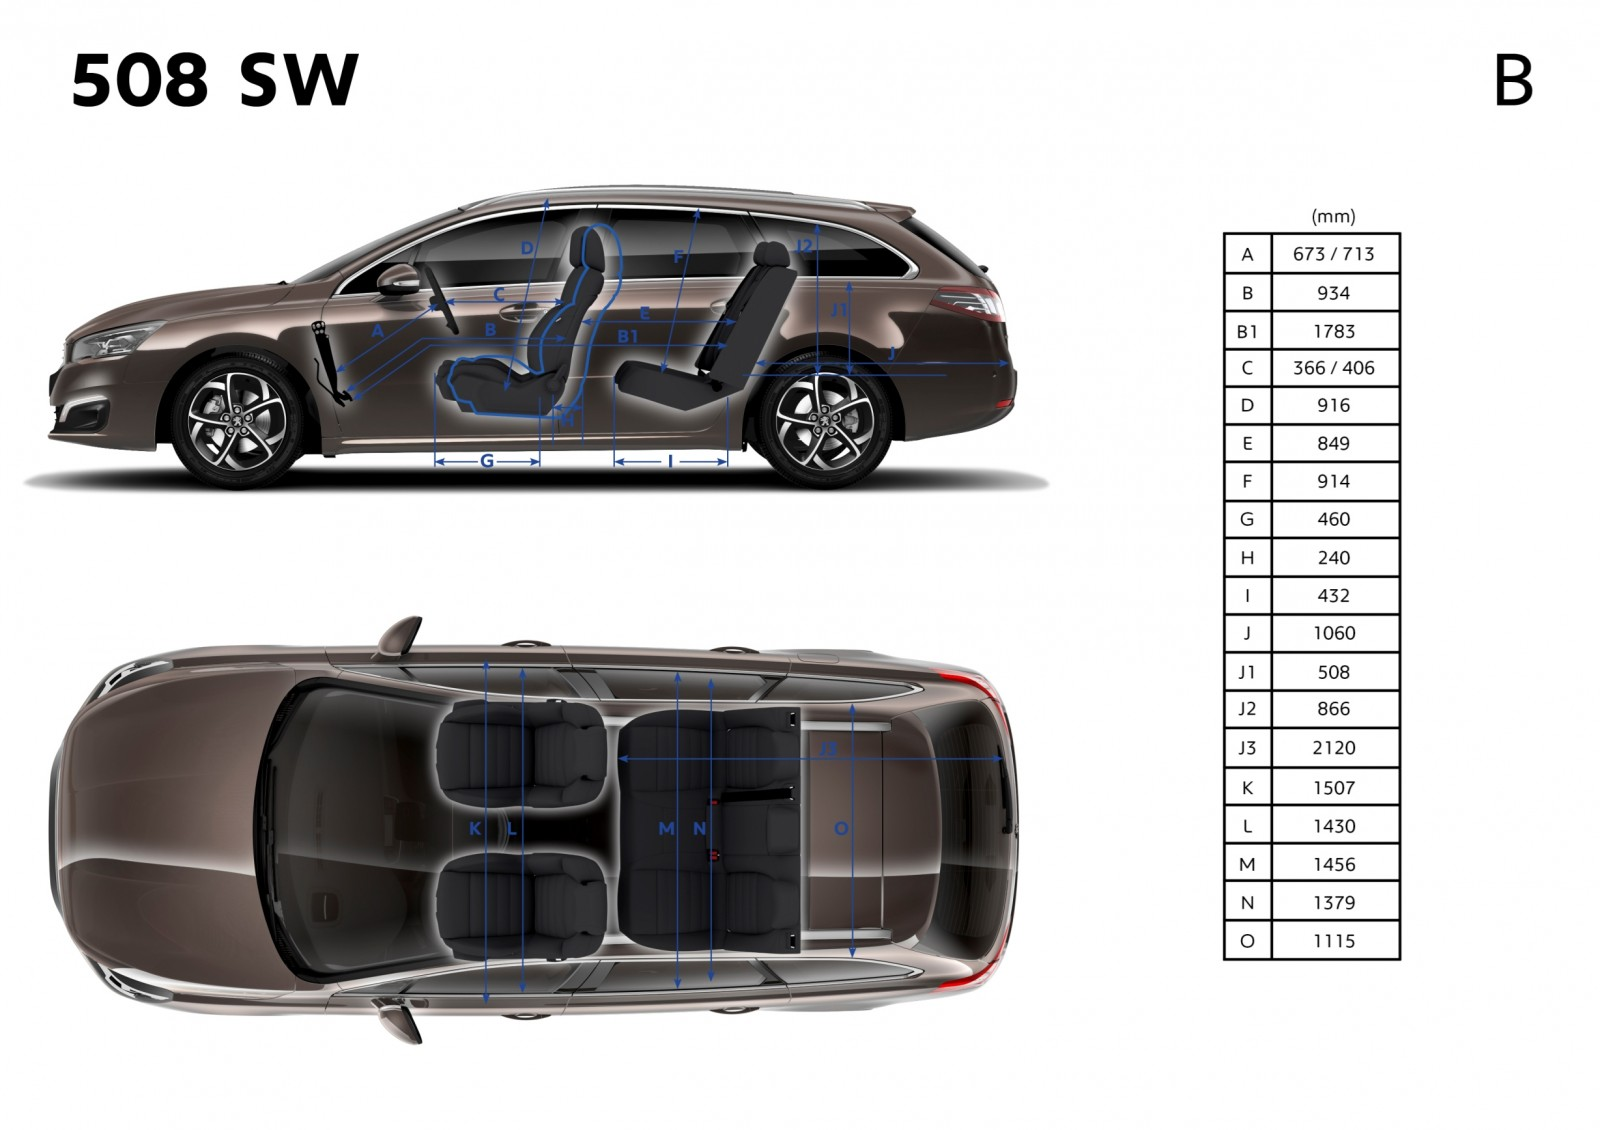 Update2 New Photos - 2015 Peugeot 508 Facelifted With New LED DRLs, Box-Design Beams and Tweaked Cabin Tech 34